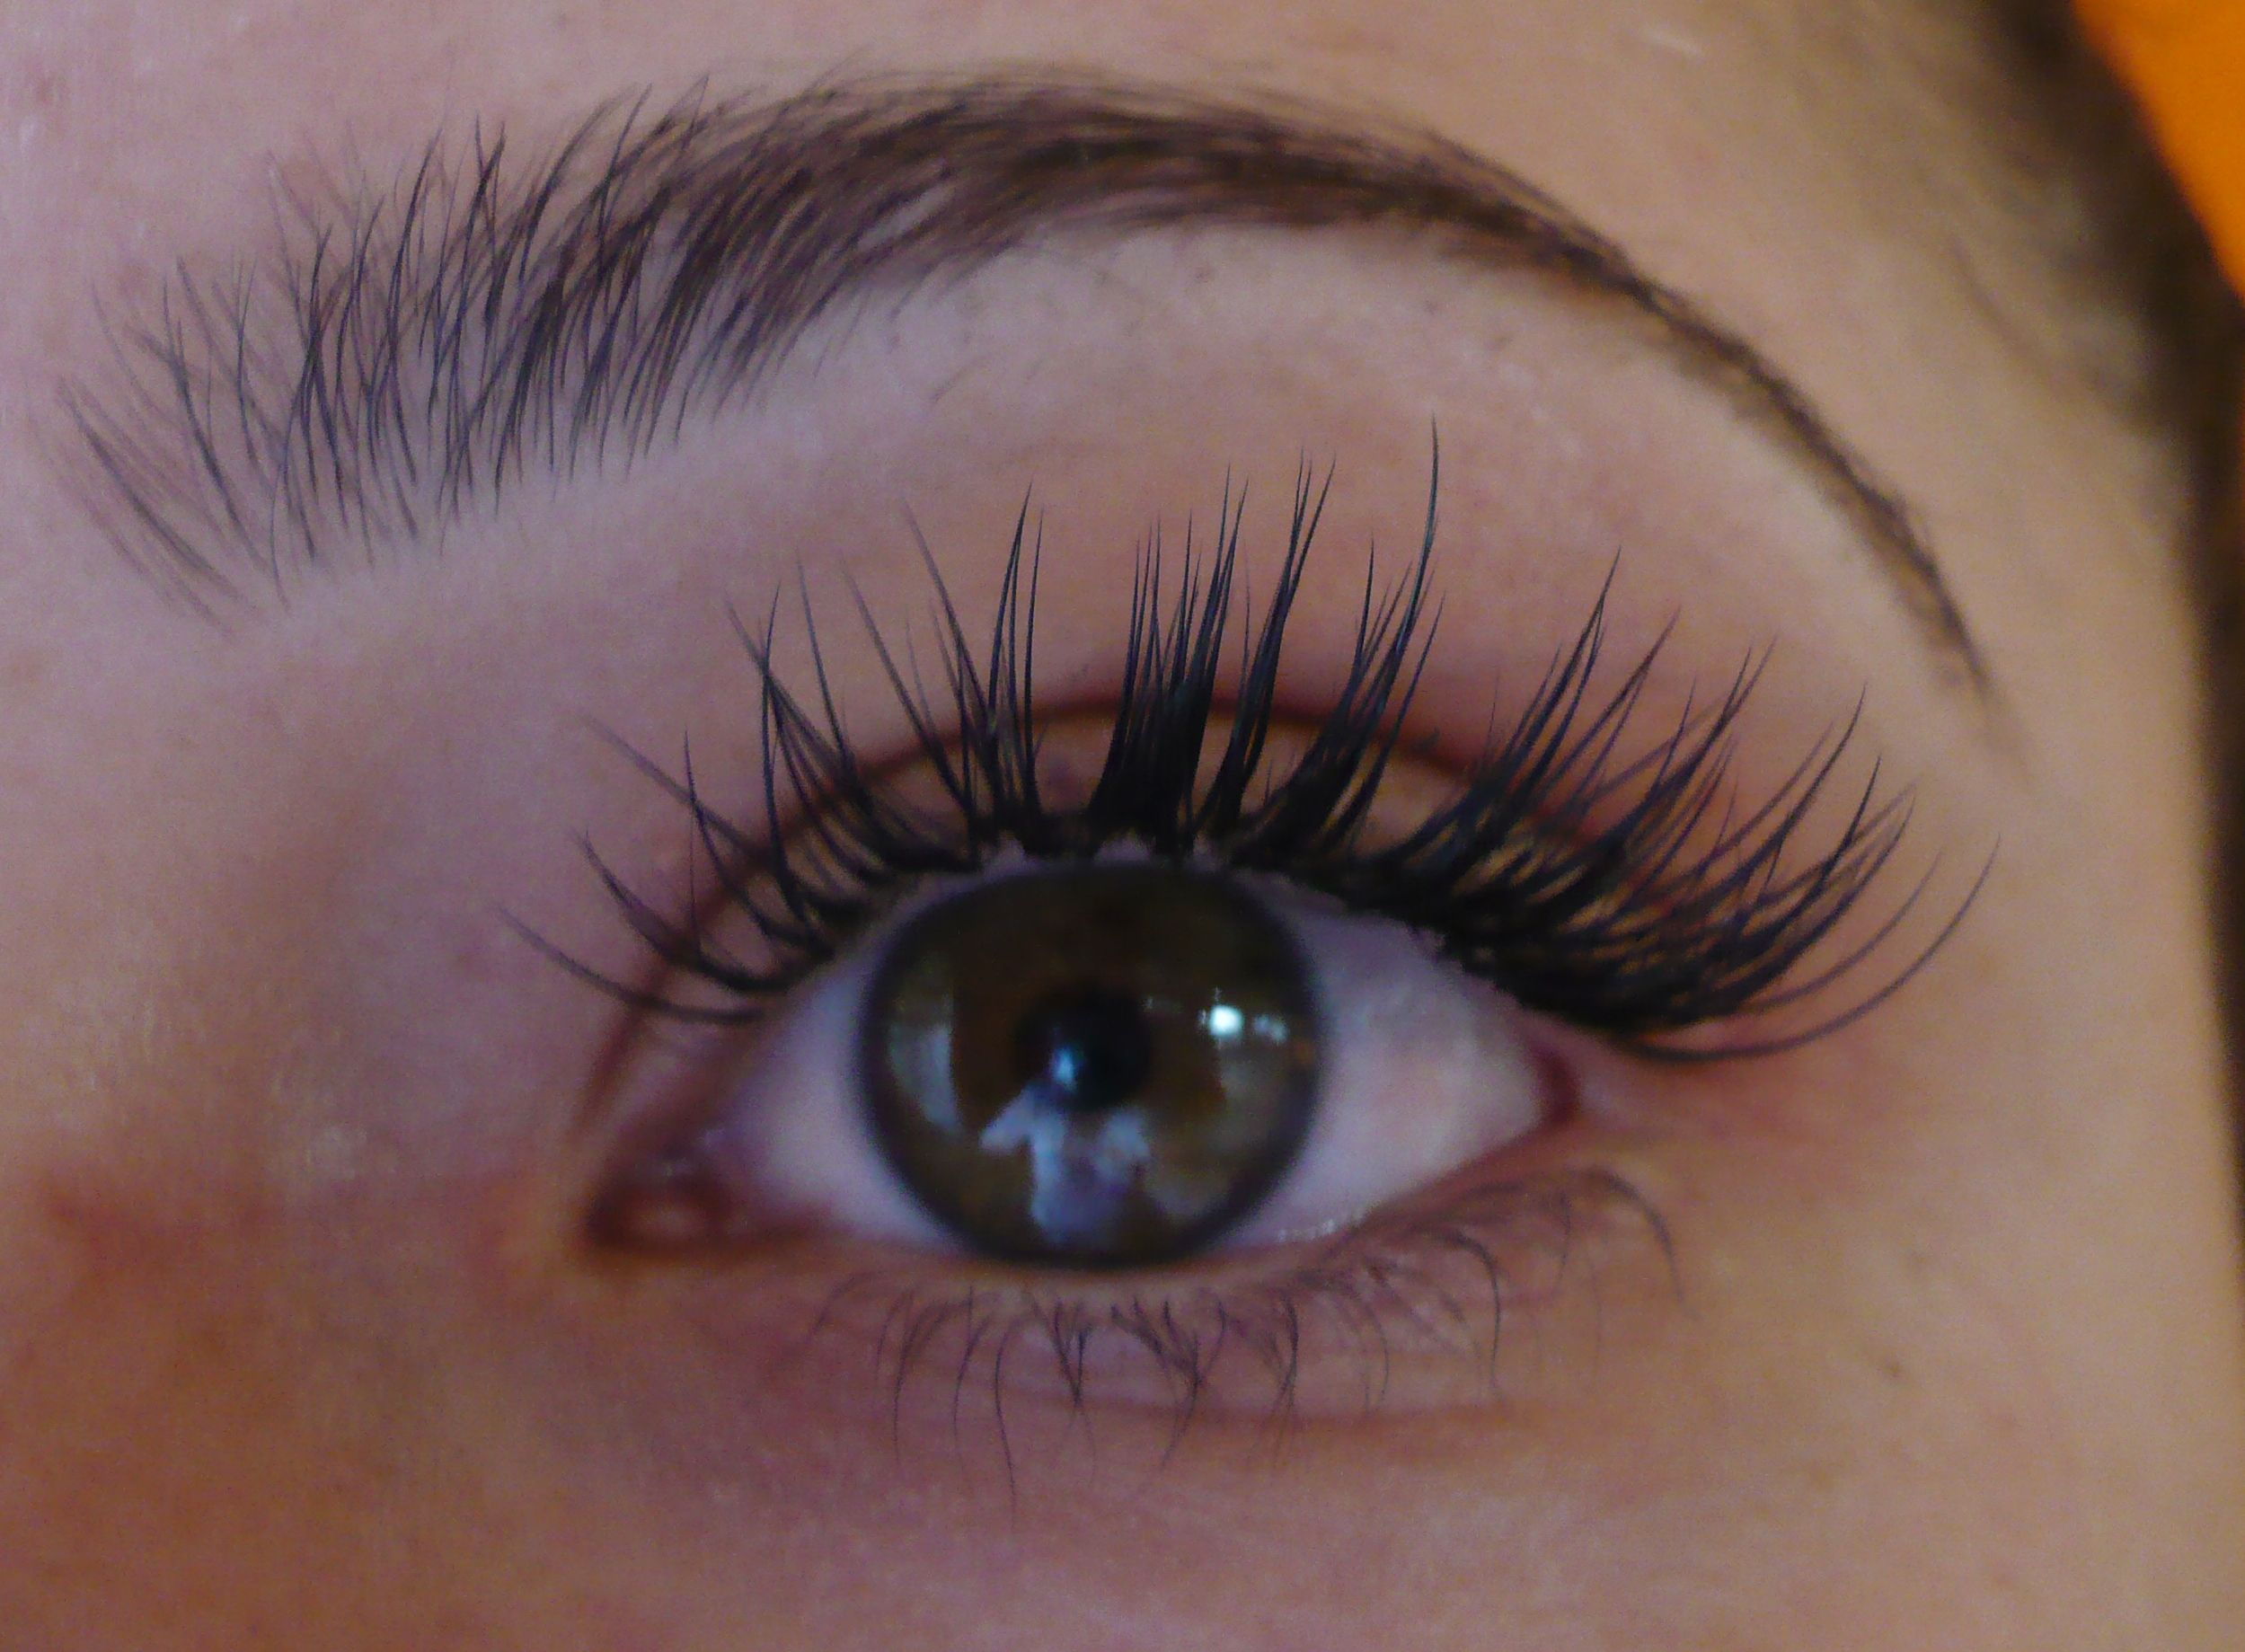 Eyelash extensions are something you really need to think